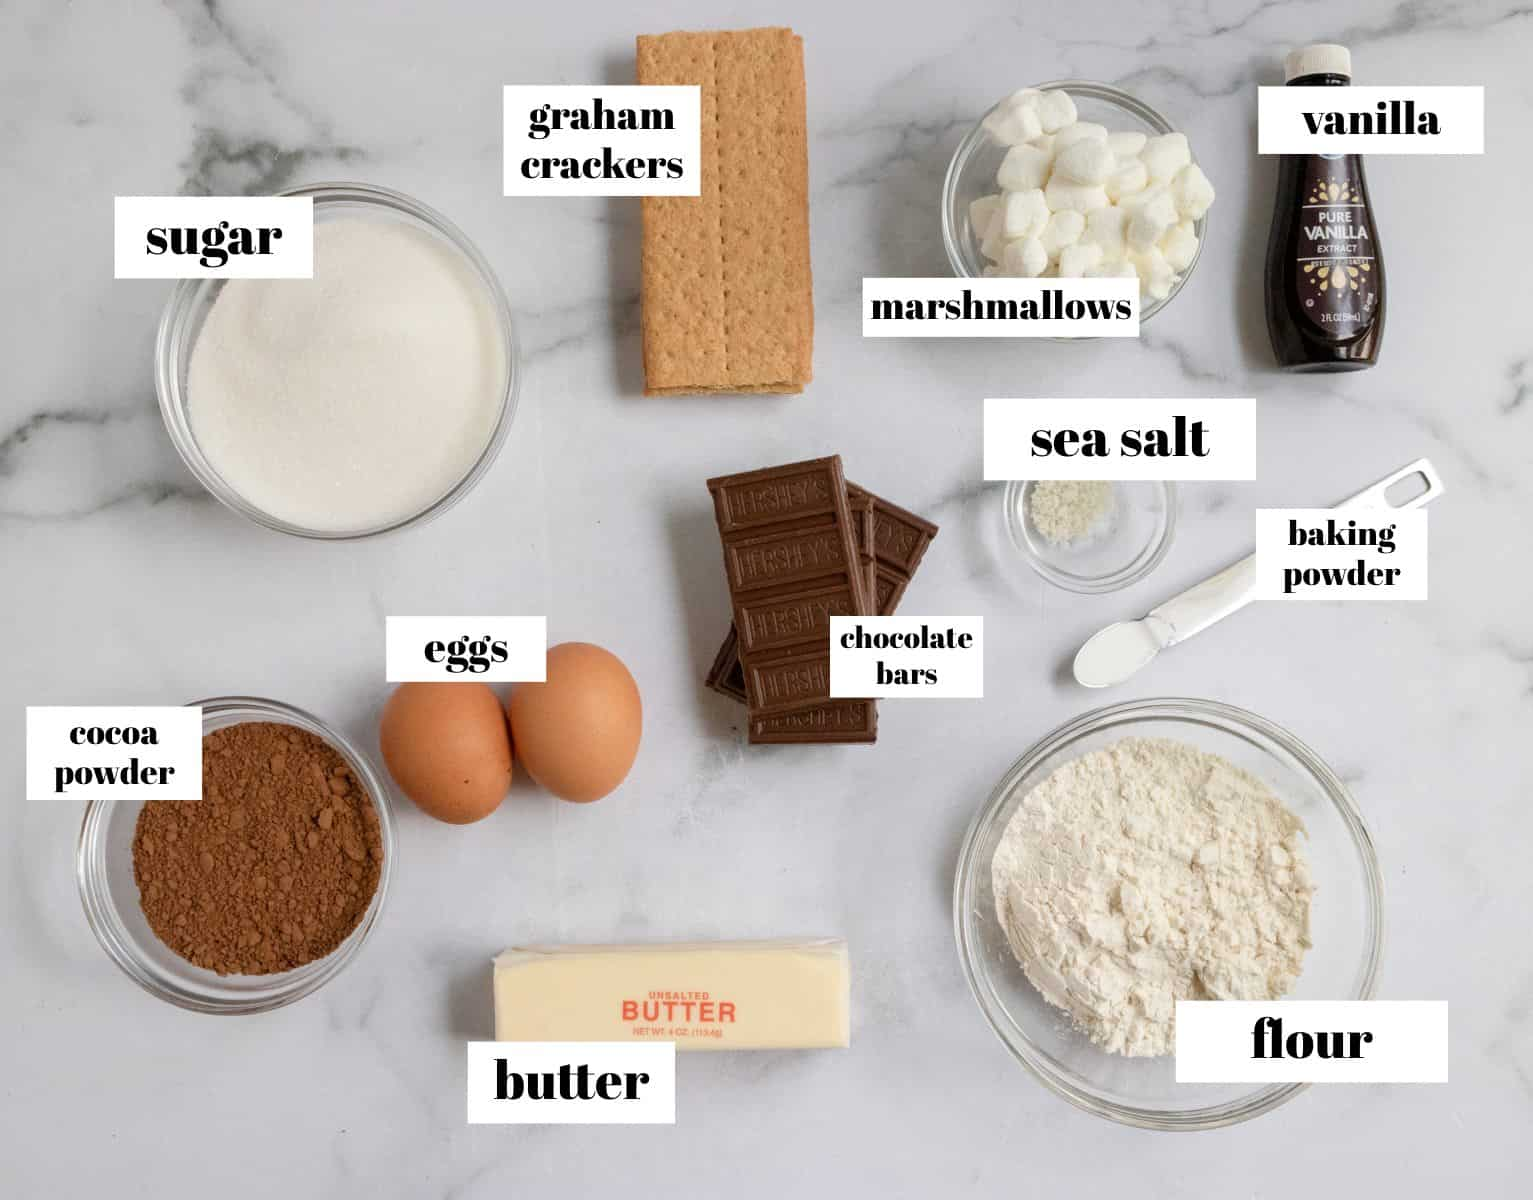 Ingredients to make recipe labeled on counter.